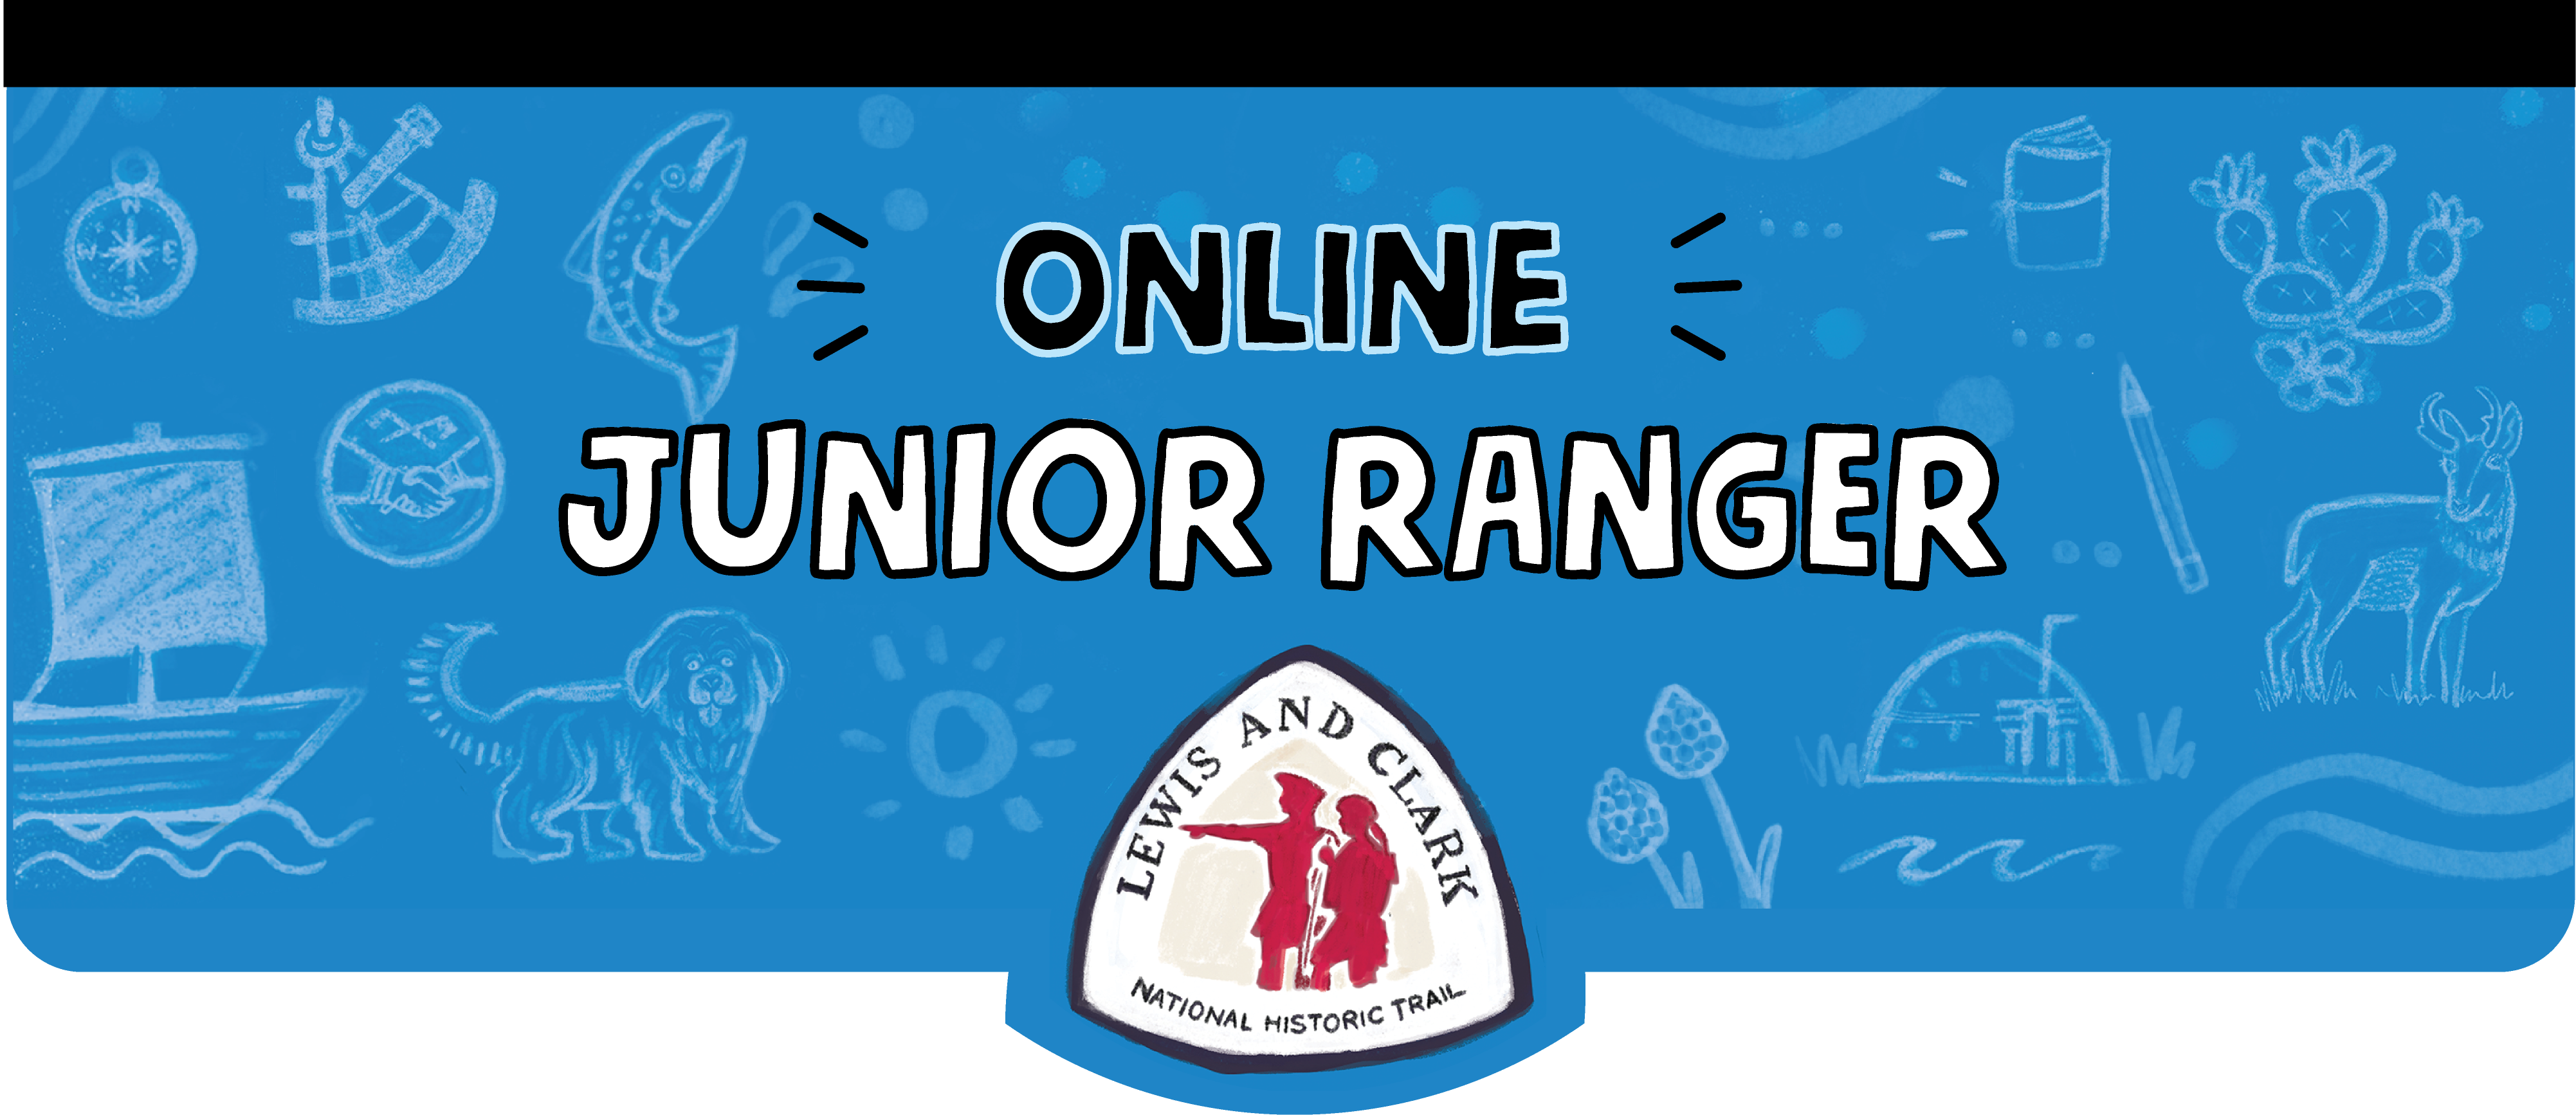 Online Junior Ranger. Lewis and Clark National Historic Trail Logo with silhouette of two explorers. Blue banner with sketches. Boat with a sail. Fluffy dog. Sextant. Compass. Salmon. Earth Lodge. Cactus. Journal. Antelope.